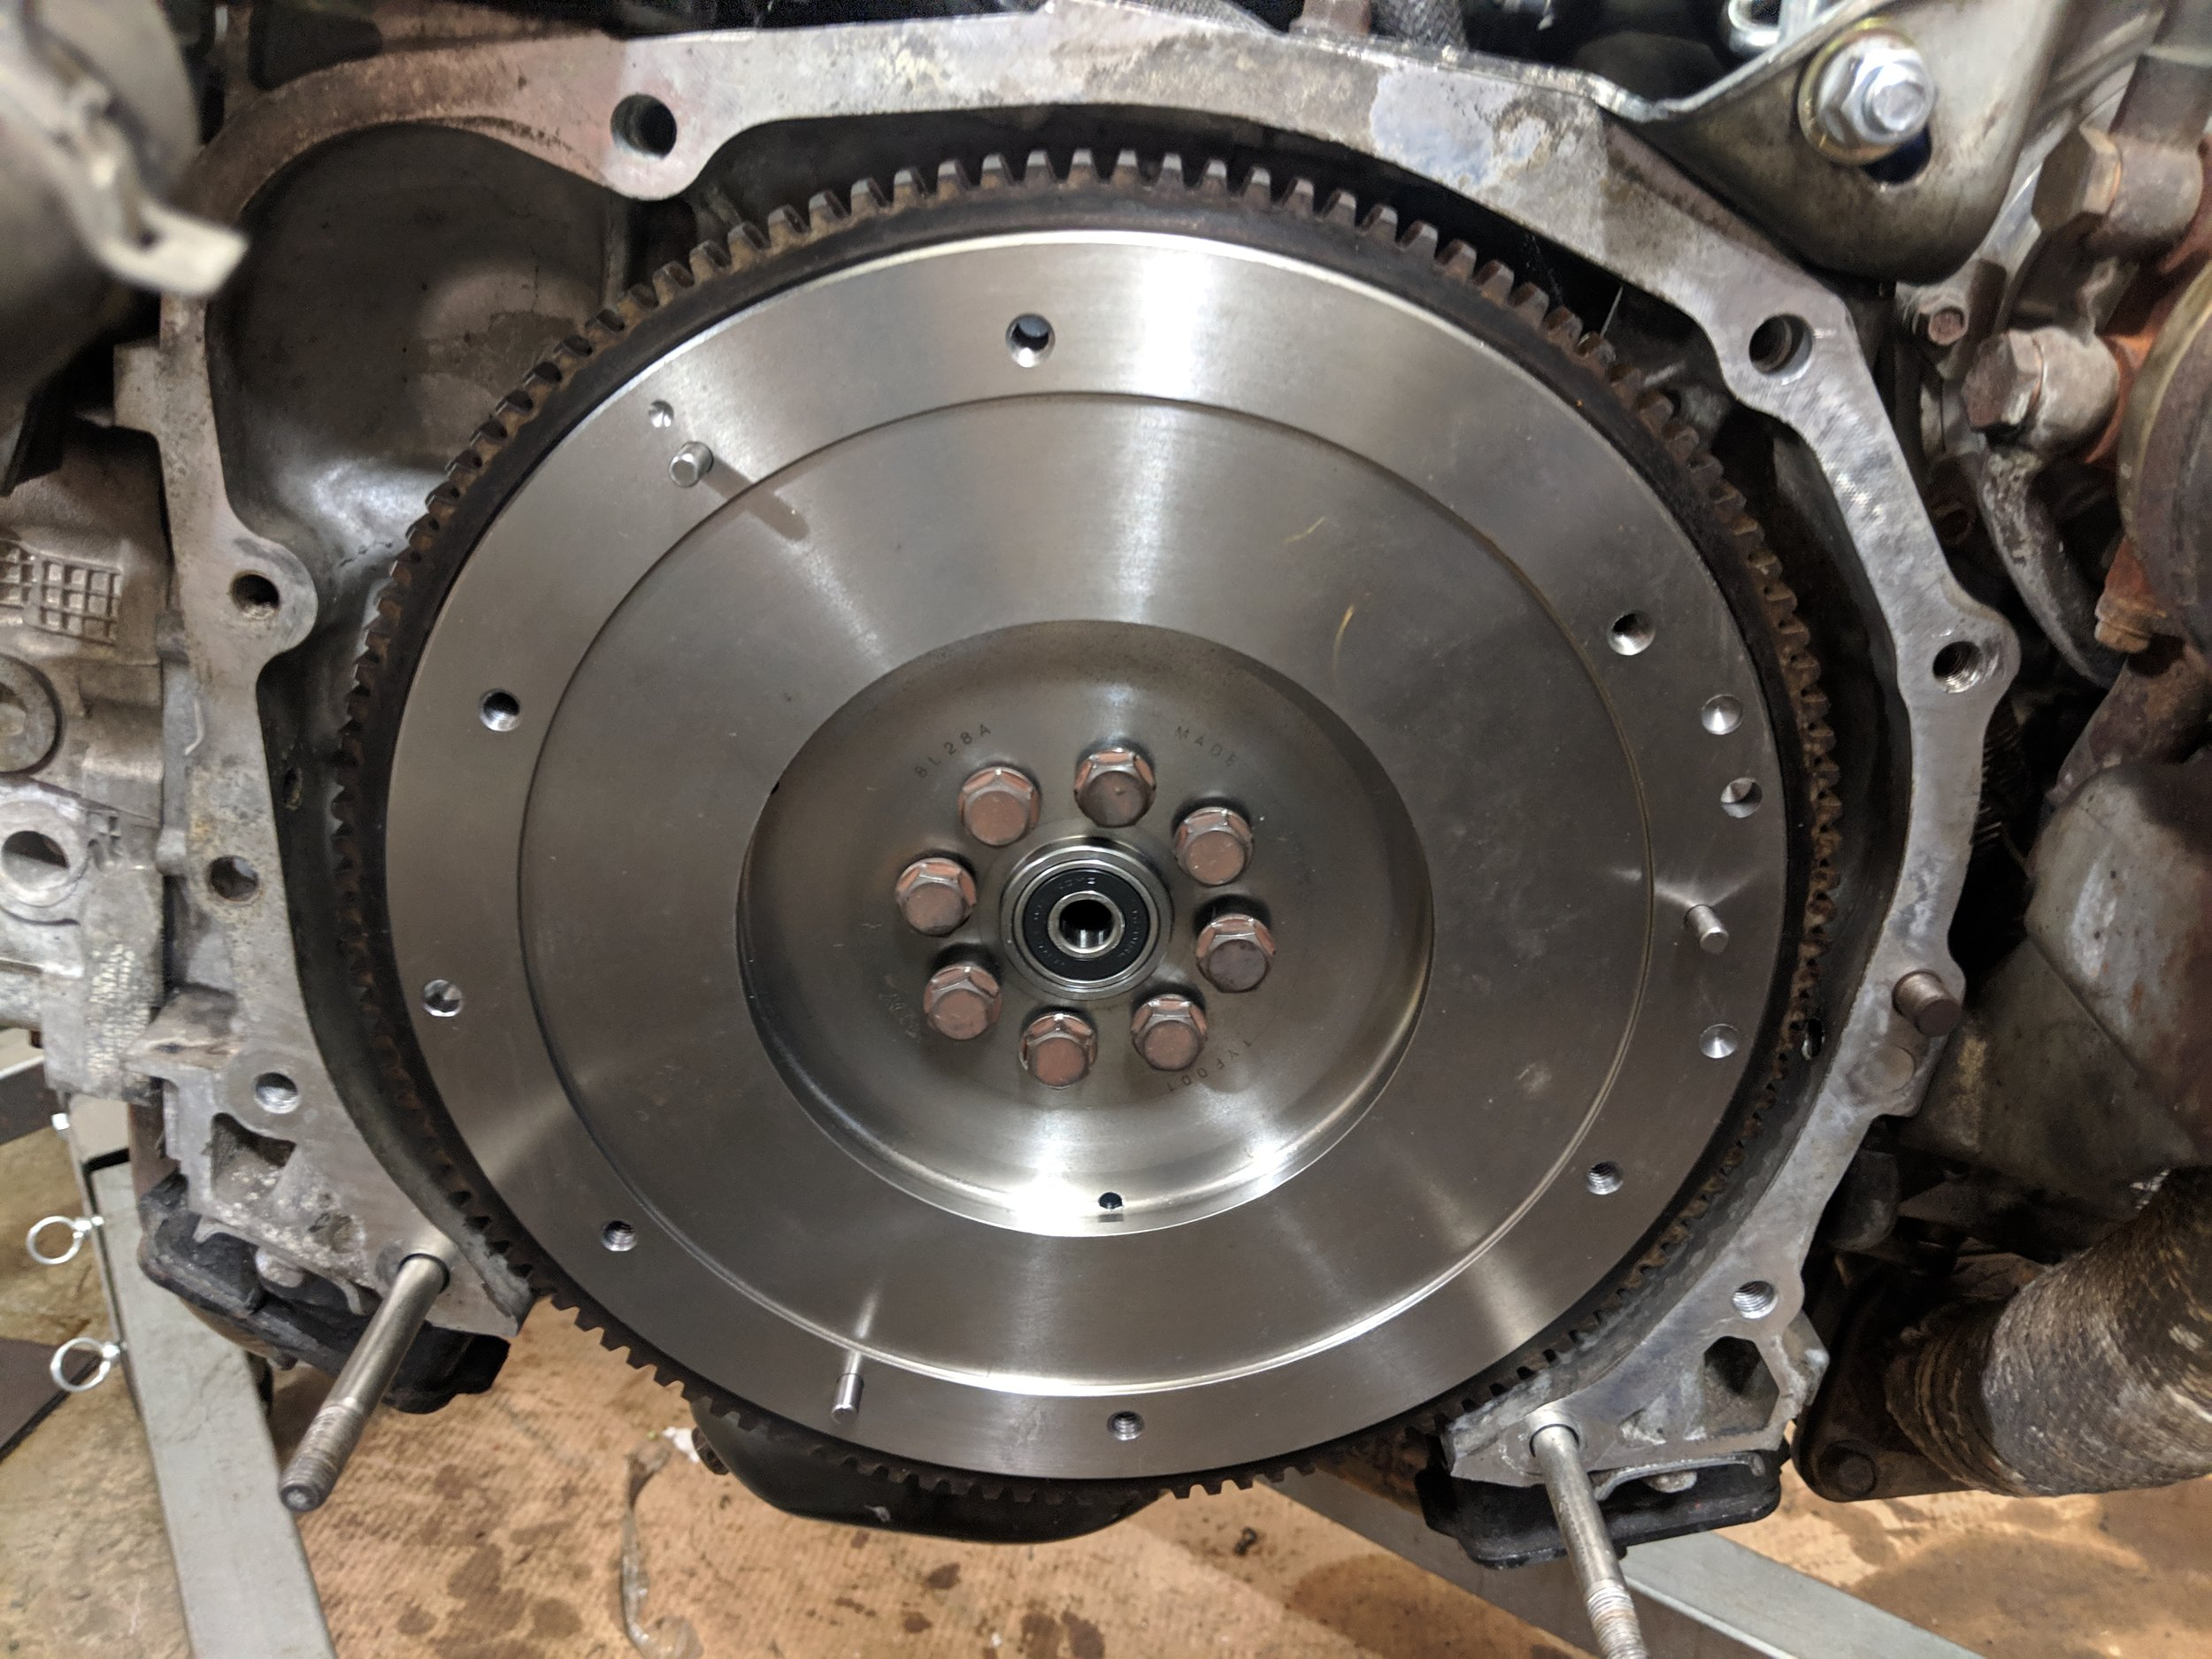 New flywheel ready to bolt up! It is a necessary upgrade for those that want the clutch upgrade.